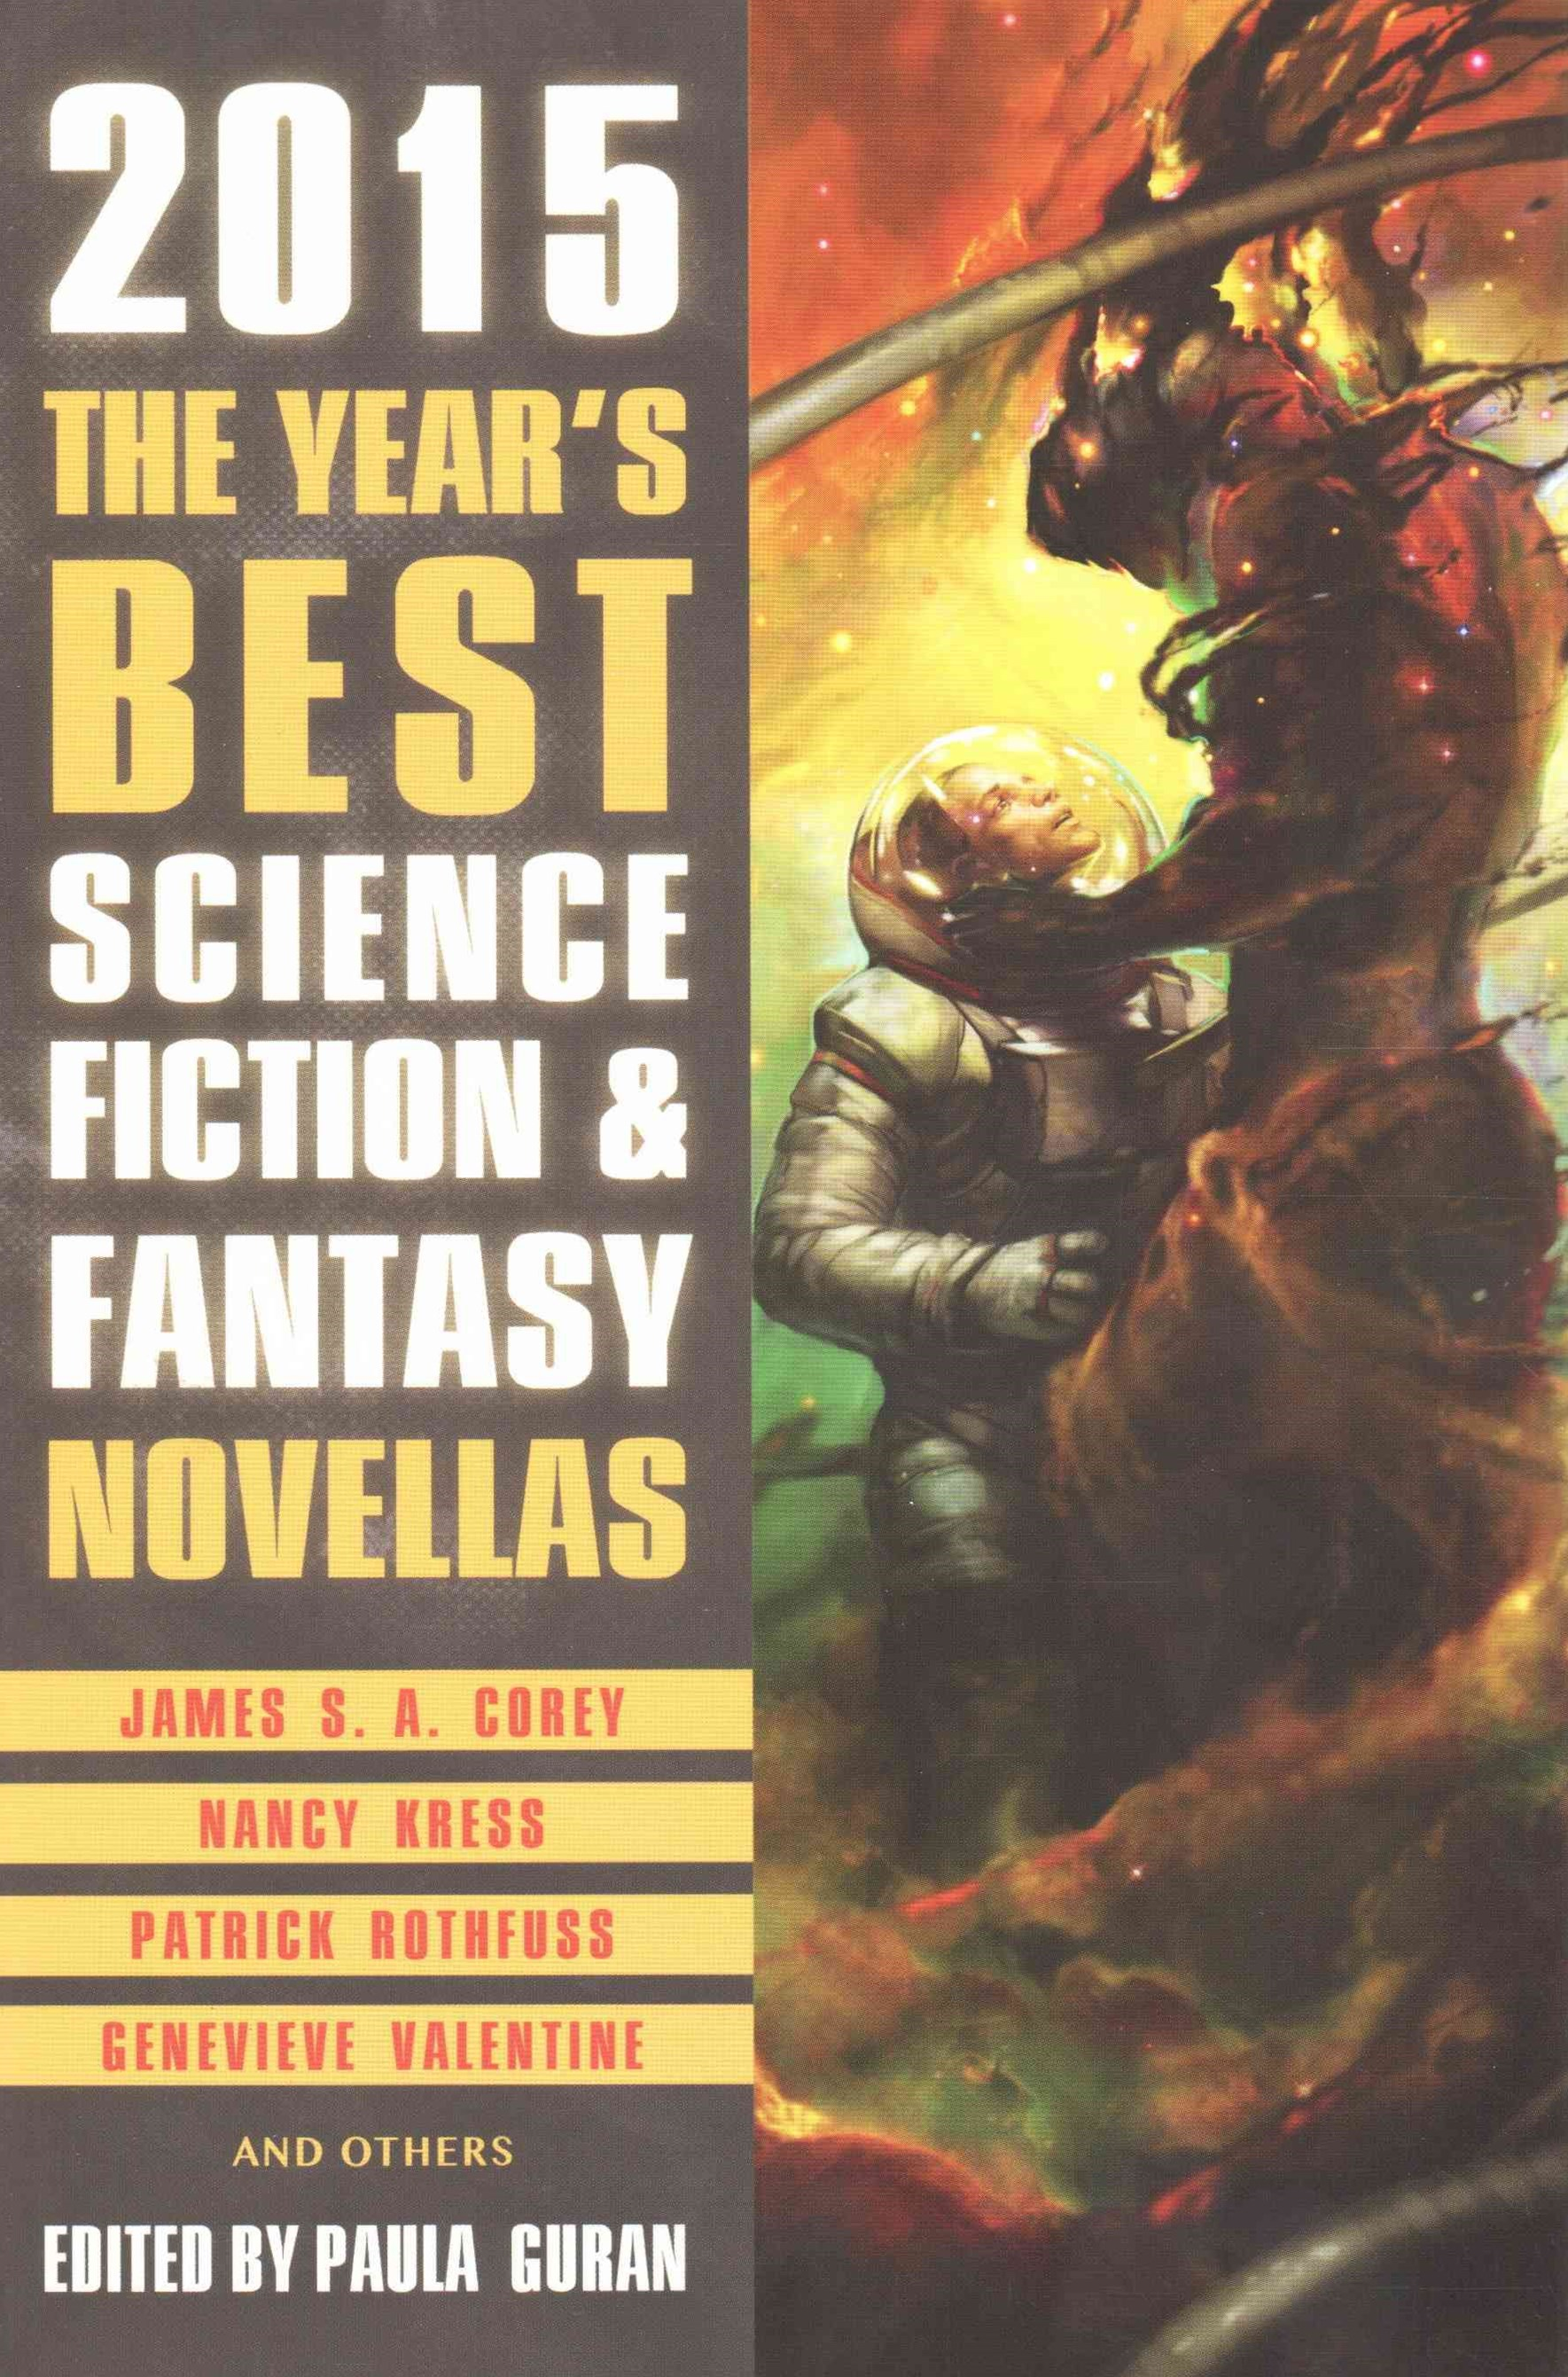 The Year's Best Science Fiction and Fantasy Novellas 2015